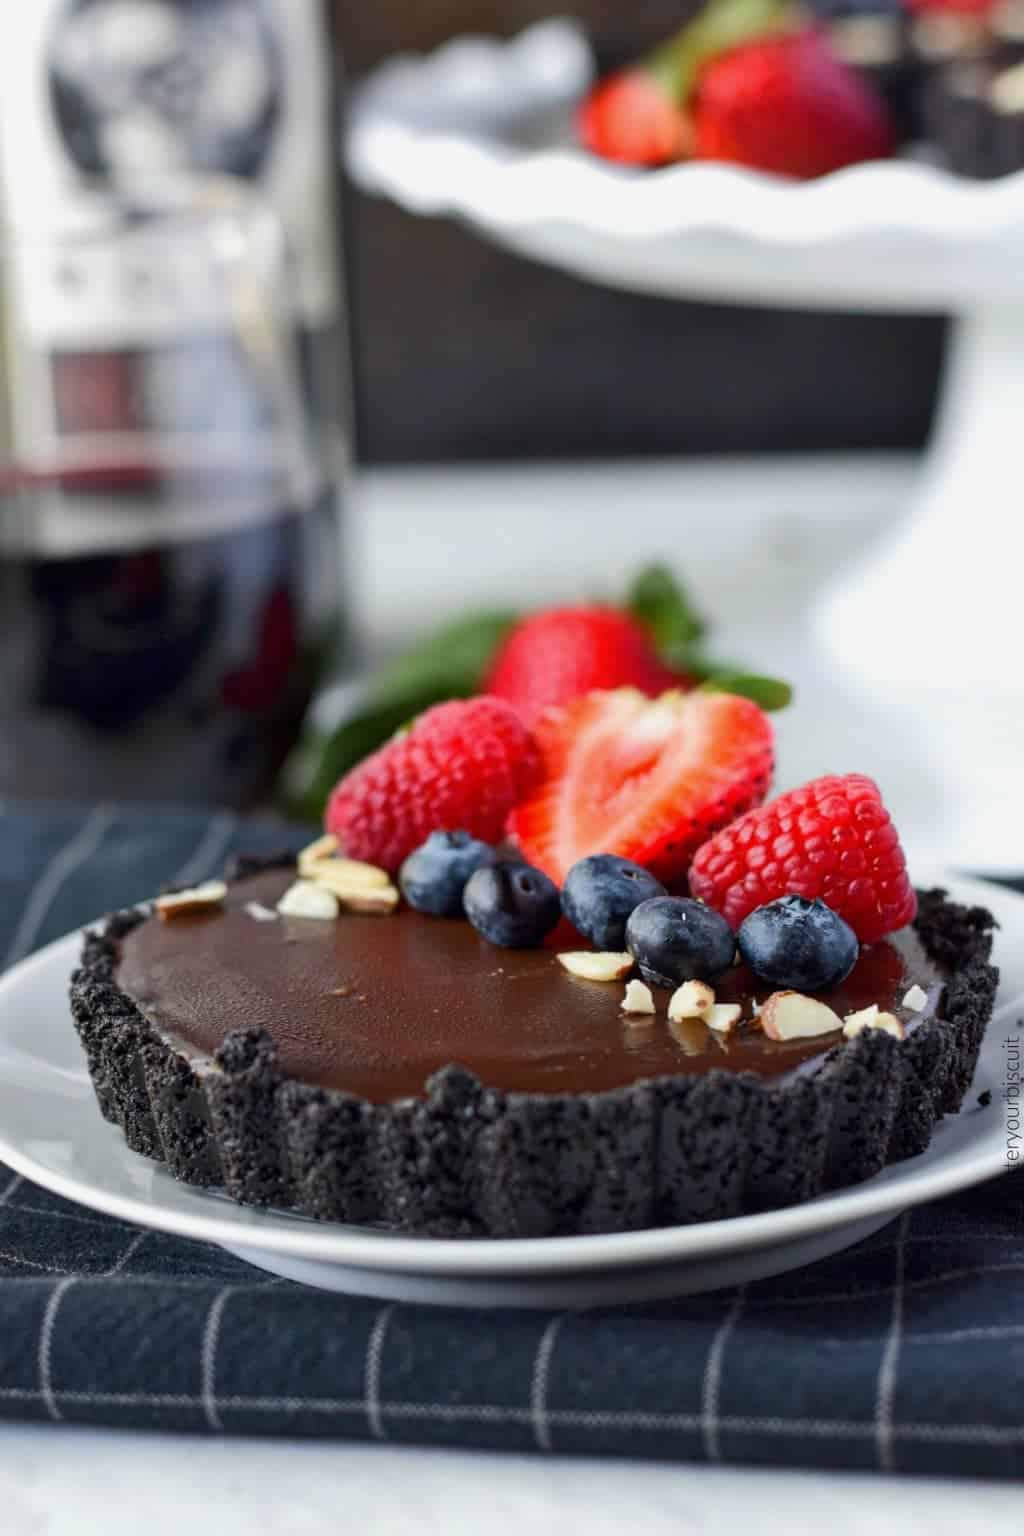 No bake chocolate mini tarts with strawberries, blueberries, rasberries and almond slivers on top on a white plate with a glass of wine